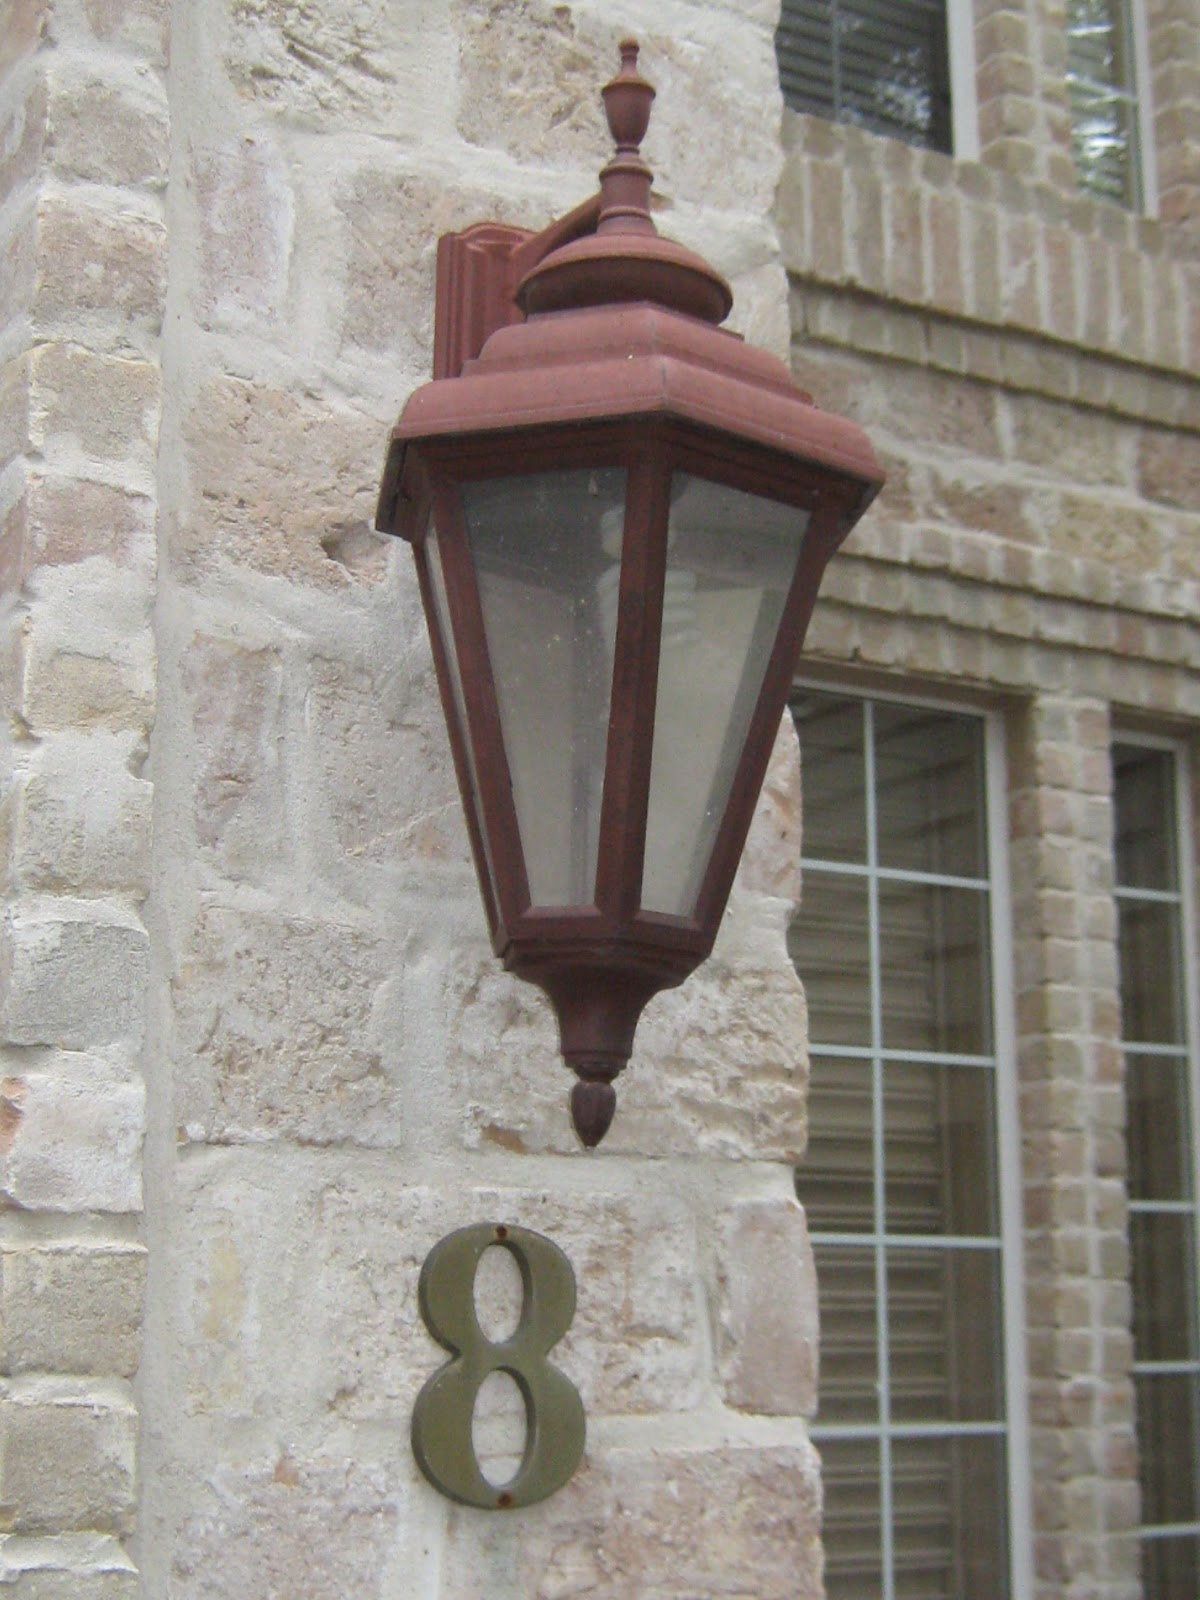 Lynda bergman decorative artisan painting exterior light fixtures i cleaned the outside but it was a little complicated and heavy to lift the top to clean the inside so my client will take care of that arubaitofo Choice Image